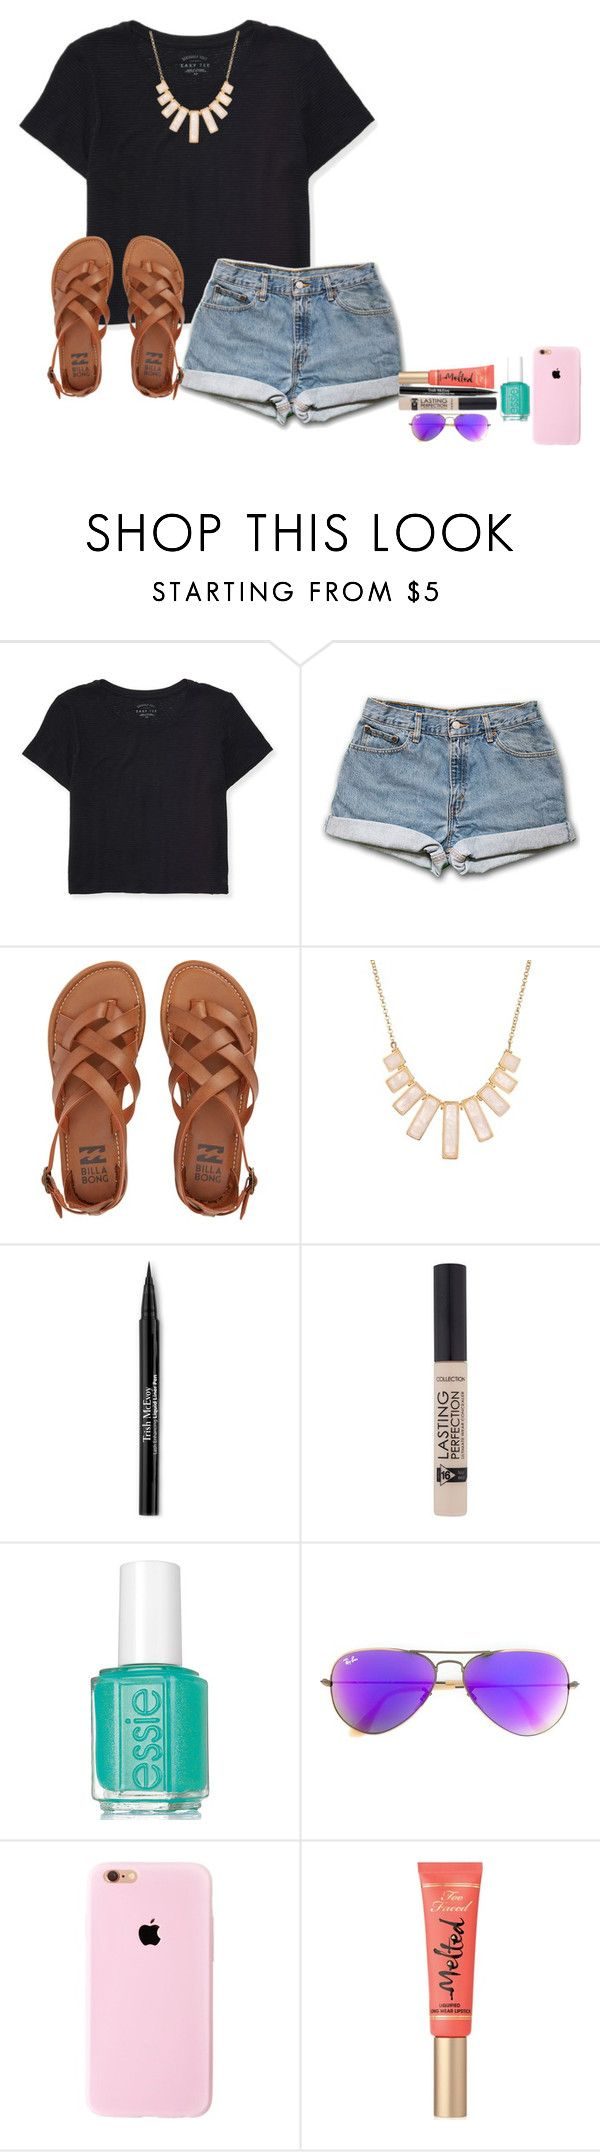 """Cool girl"" by amaya-leigh ❤ liked on Polyvore featuring Aéropostale, Billabong, Rivka Friedman, Trish McEvoy, Ray-Ban and Too Faced Cosmetics"